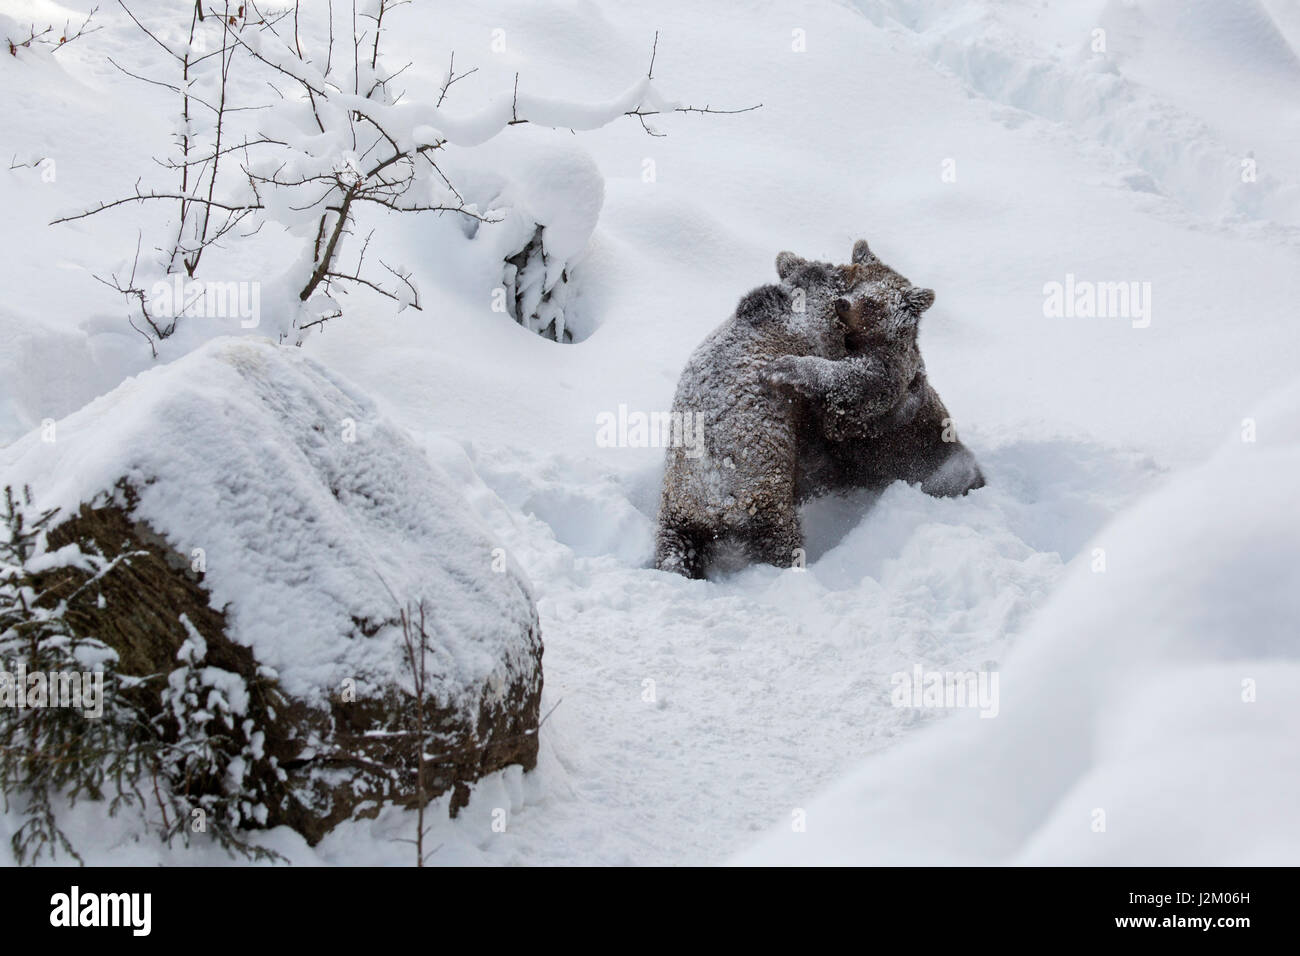 Two 1-year-old brown bear cubs (Ursus arctos arctos) play fighting in the snow in winter - Stock Image